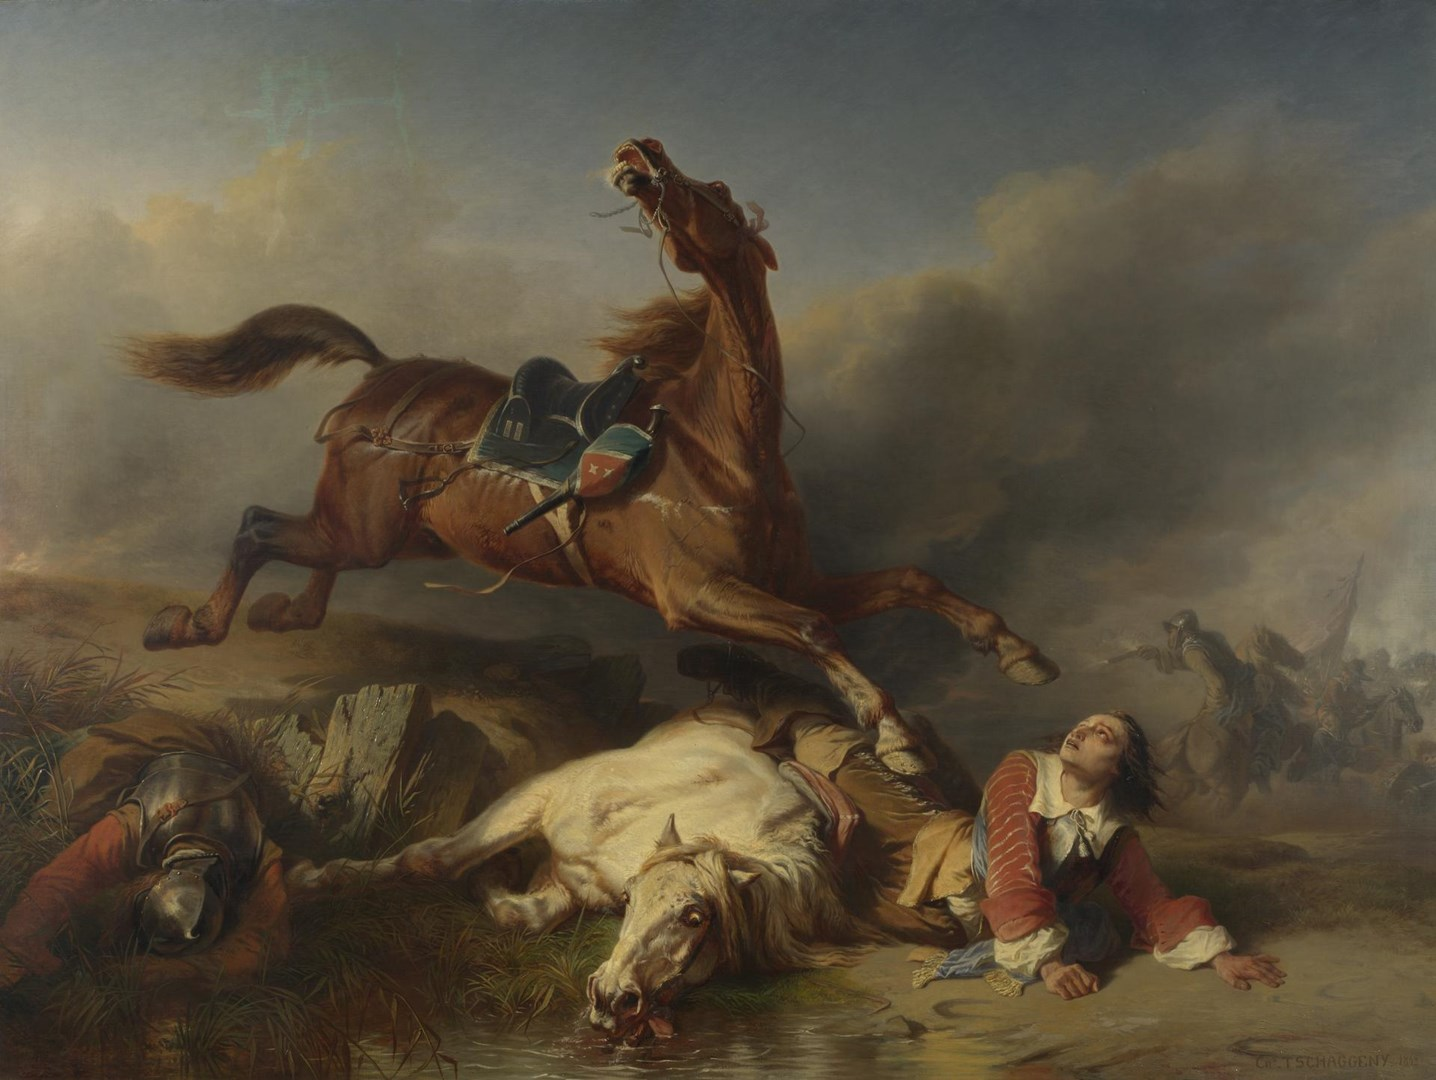 An Episode on the Field of Battle by Charles-Philogène Tschaggeny